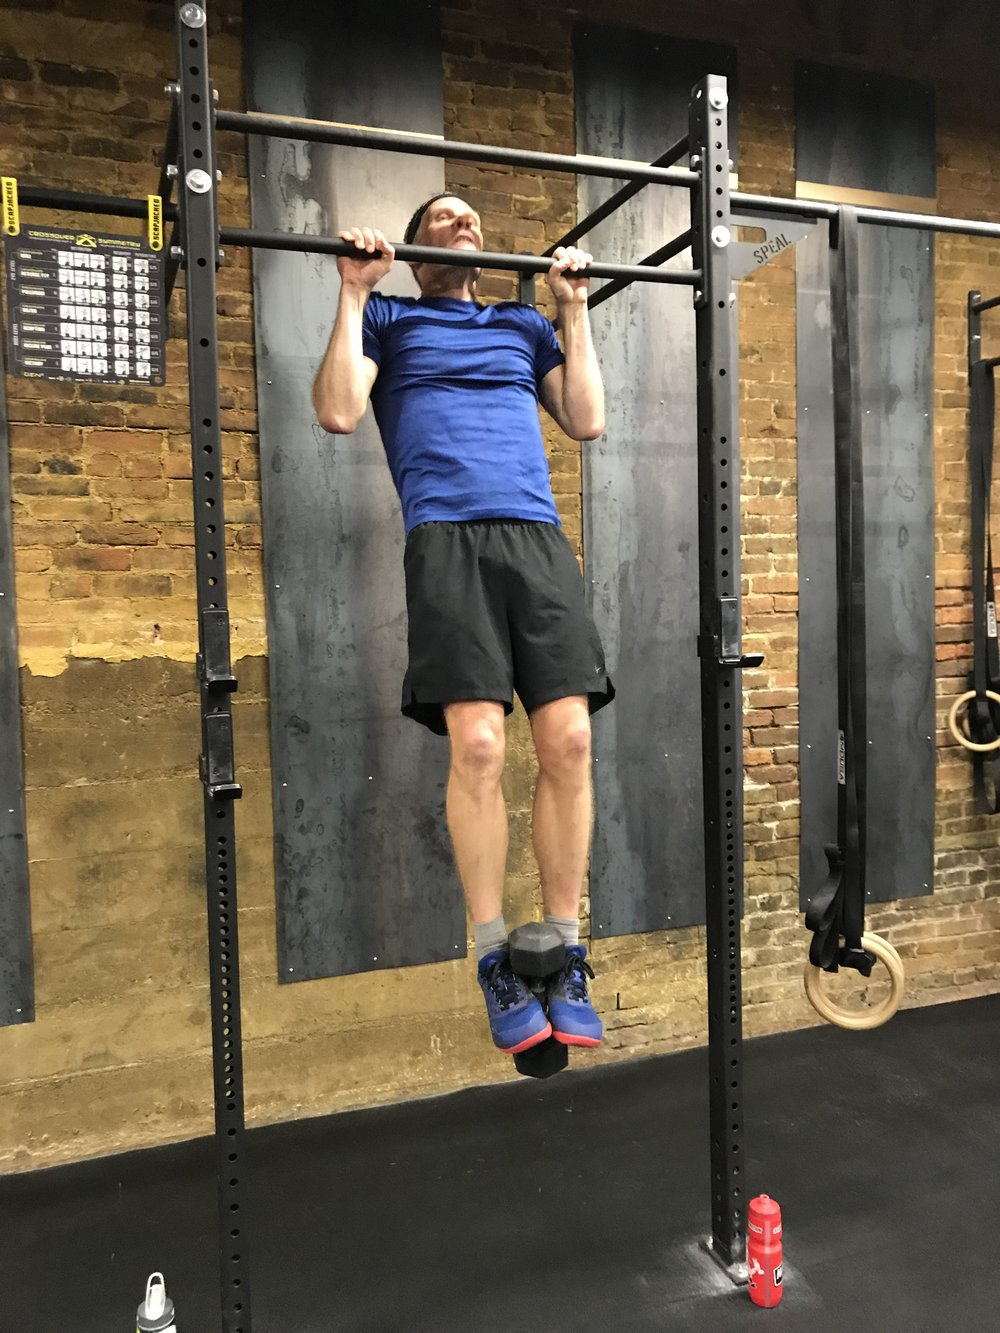 Paul busting out some weighted pull ups this week. That dumbbell looks good on you, Paul.